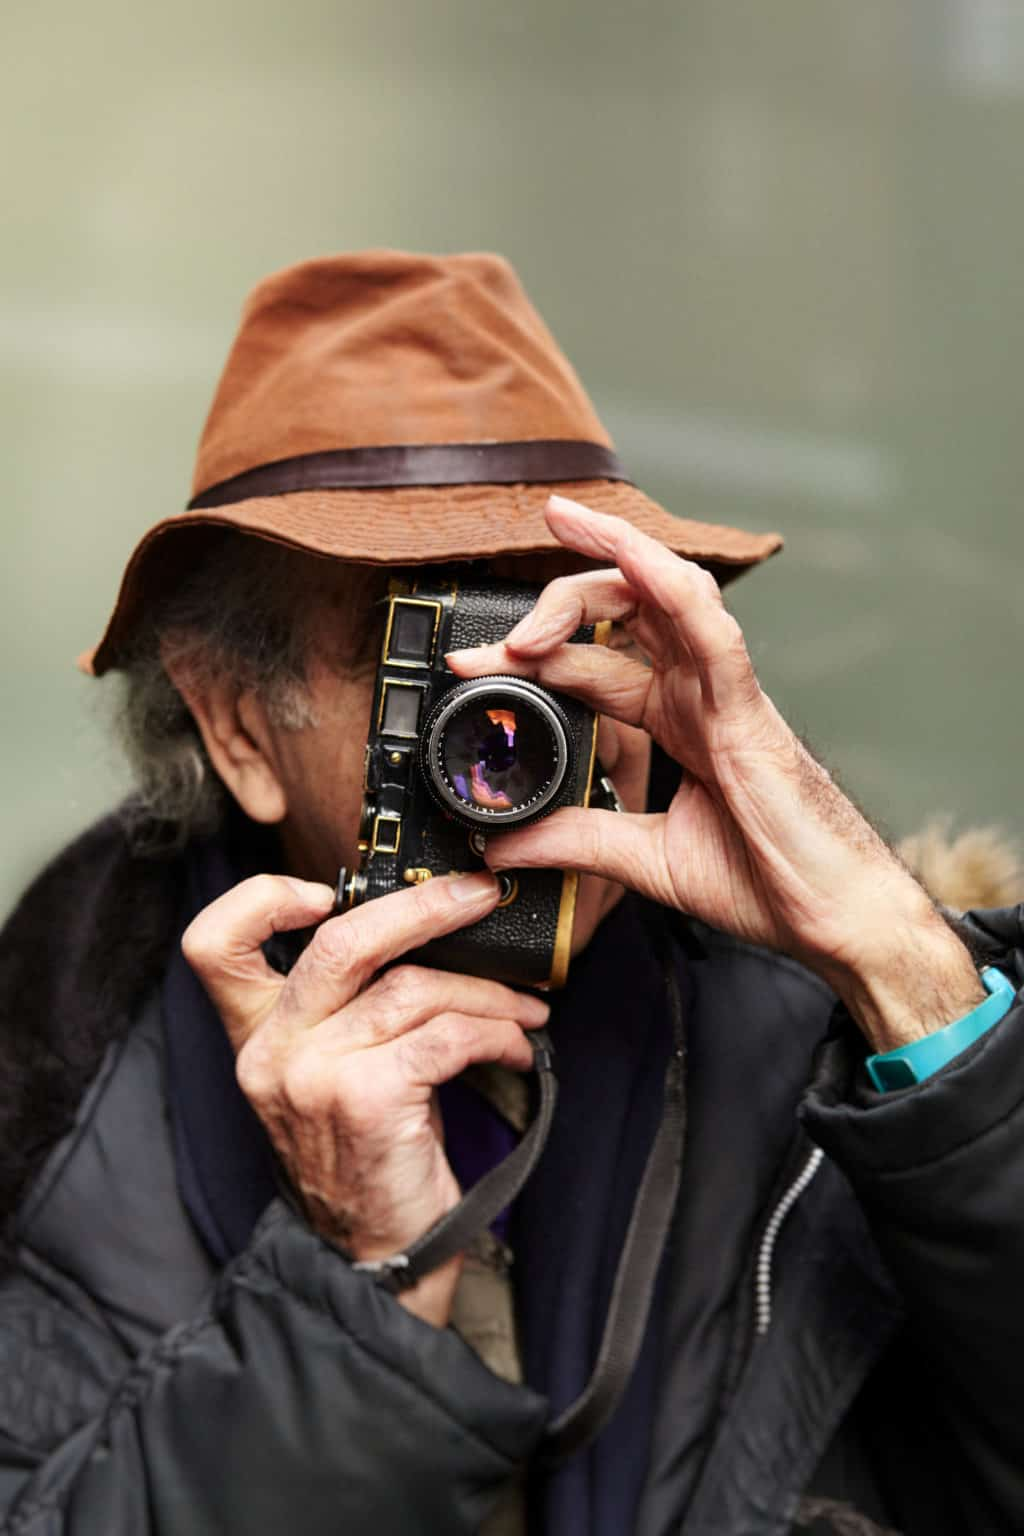 """""""Action portrait of Neil Libbert taking a picture with an old Leica rangefinder camera. His hands elegantly operating the controls. Blurry out of focus green background."""""""